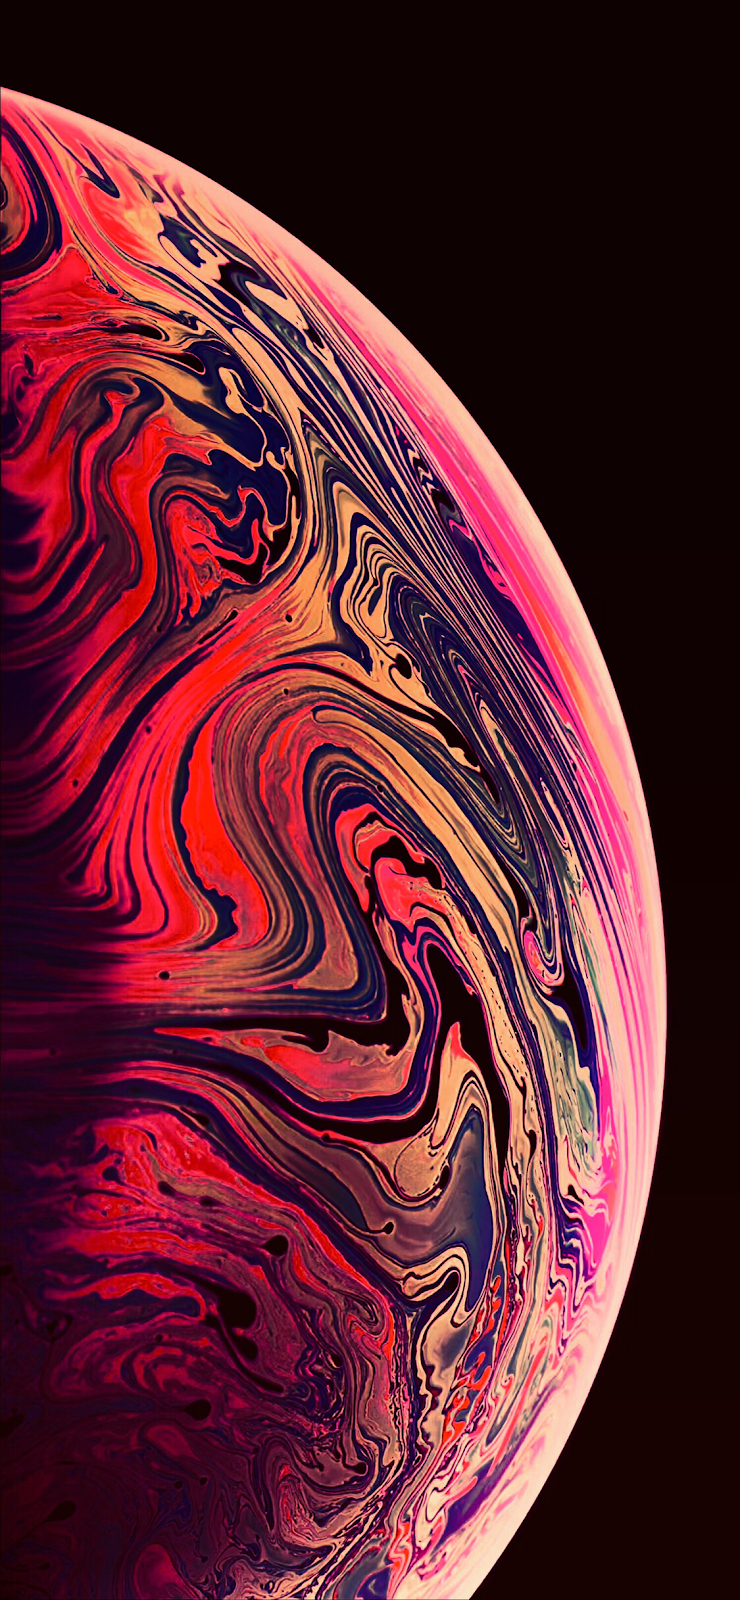 iPhone XS MAX Gradient Modd Wallpapers by AR72014 (2 variants) | Wall | Iphone wallpaper, Apple ...